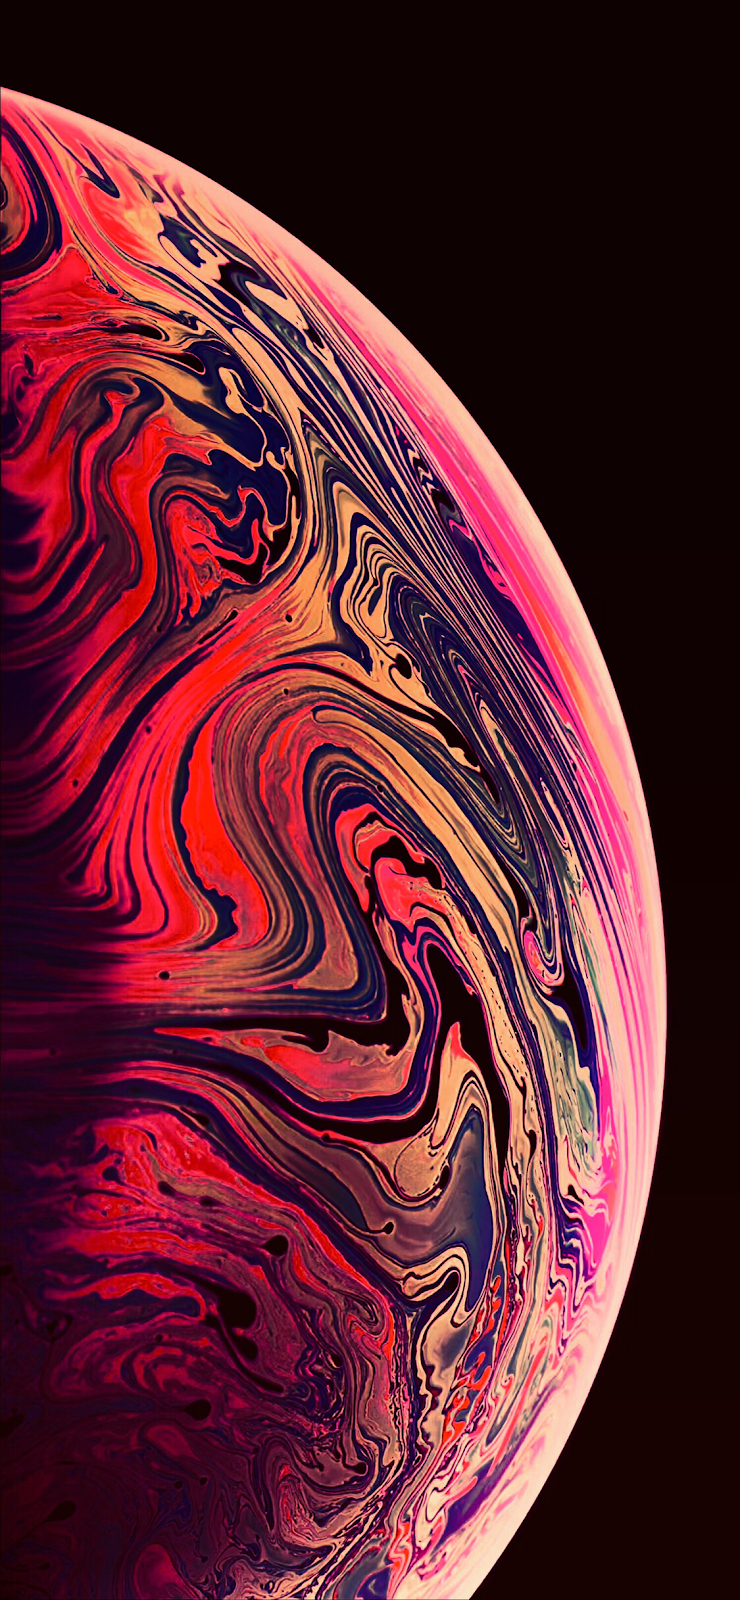 iPhone XS MAX Gradient Modd Wallpapers by AR72014 (2 variants) | Wall | Iphone wallpaper, Apple ...